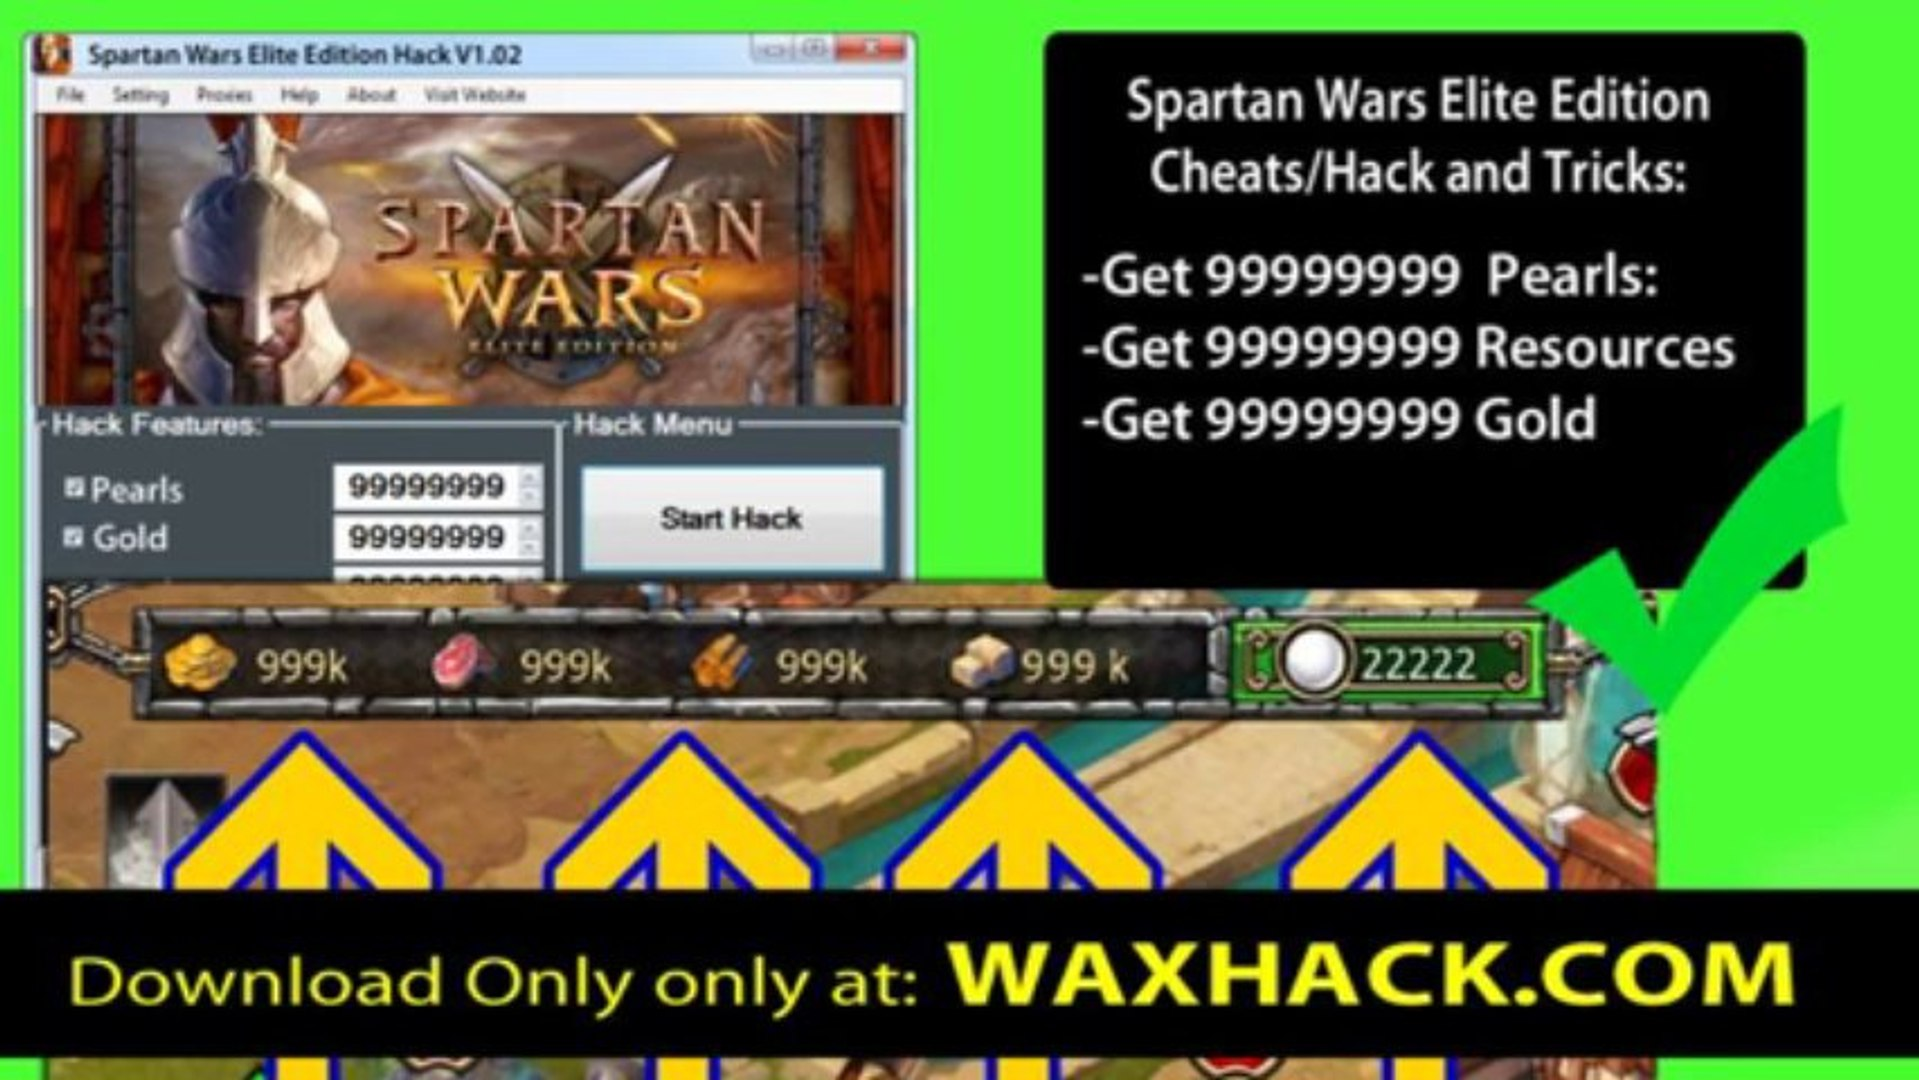 Spartan Wars Elite Edition Cheats get 99999999 Pearls - iOs Working Spartan Wars Elite Edition Pearl